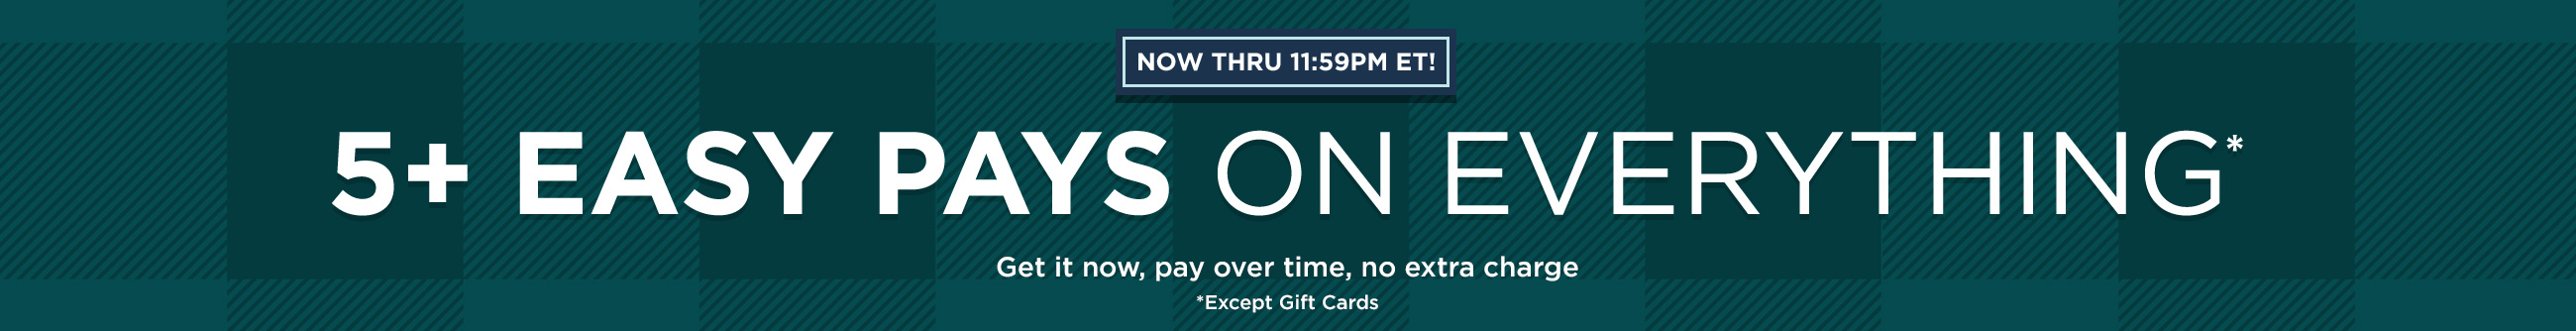 Now thru 11:59pm ET! 5+ Easy Pays on Everything Except Gift Cards — Get it now, pay over time, no extra charge